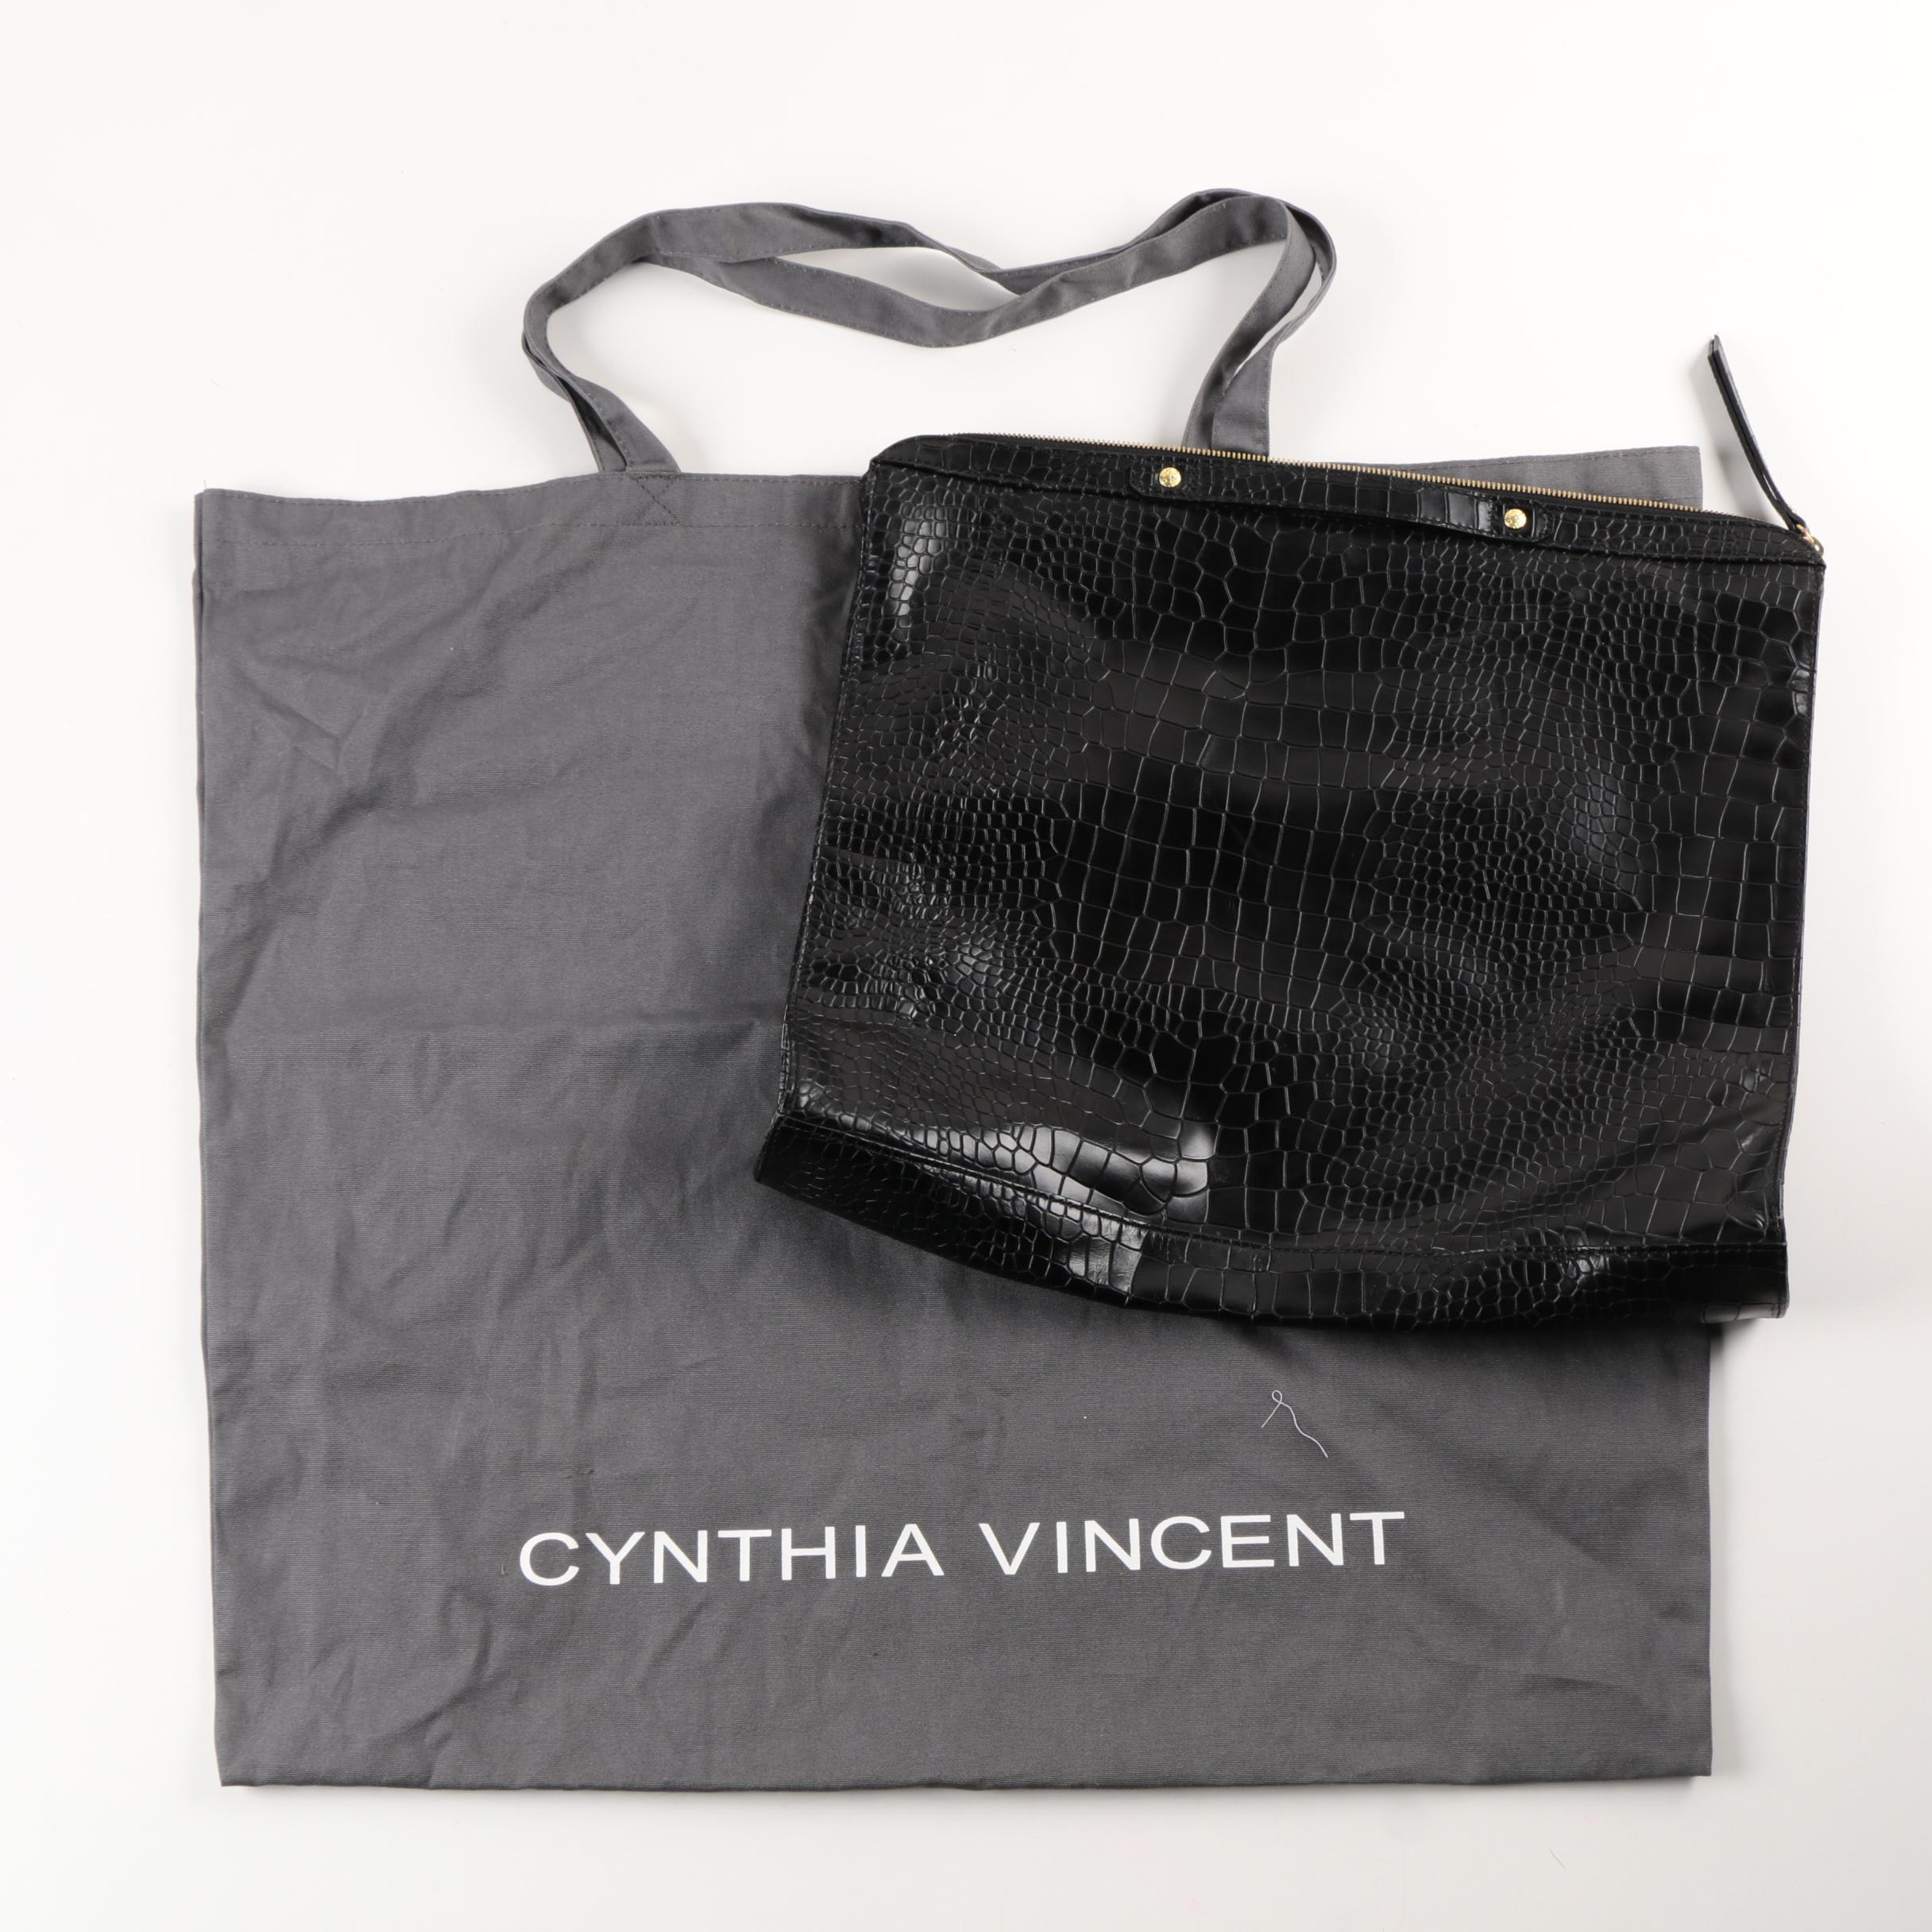 Cynthia Vincent Tote and Embossed Leather Clutch